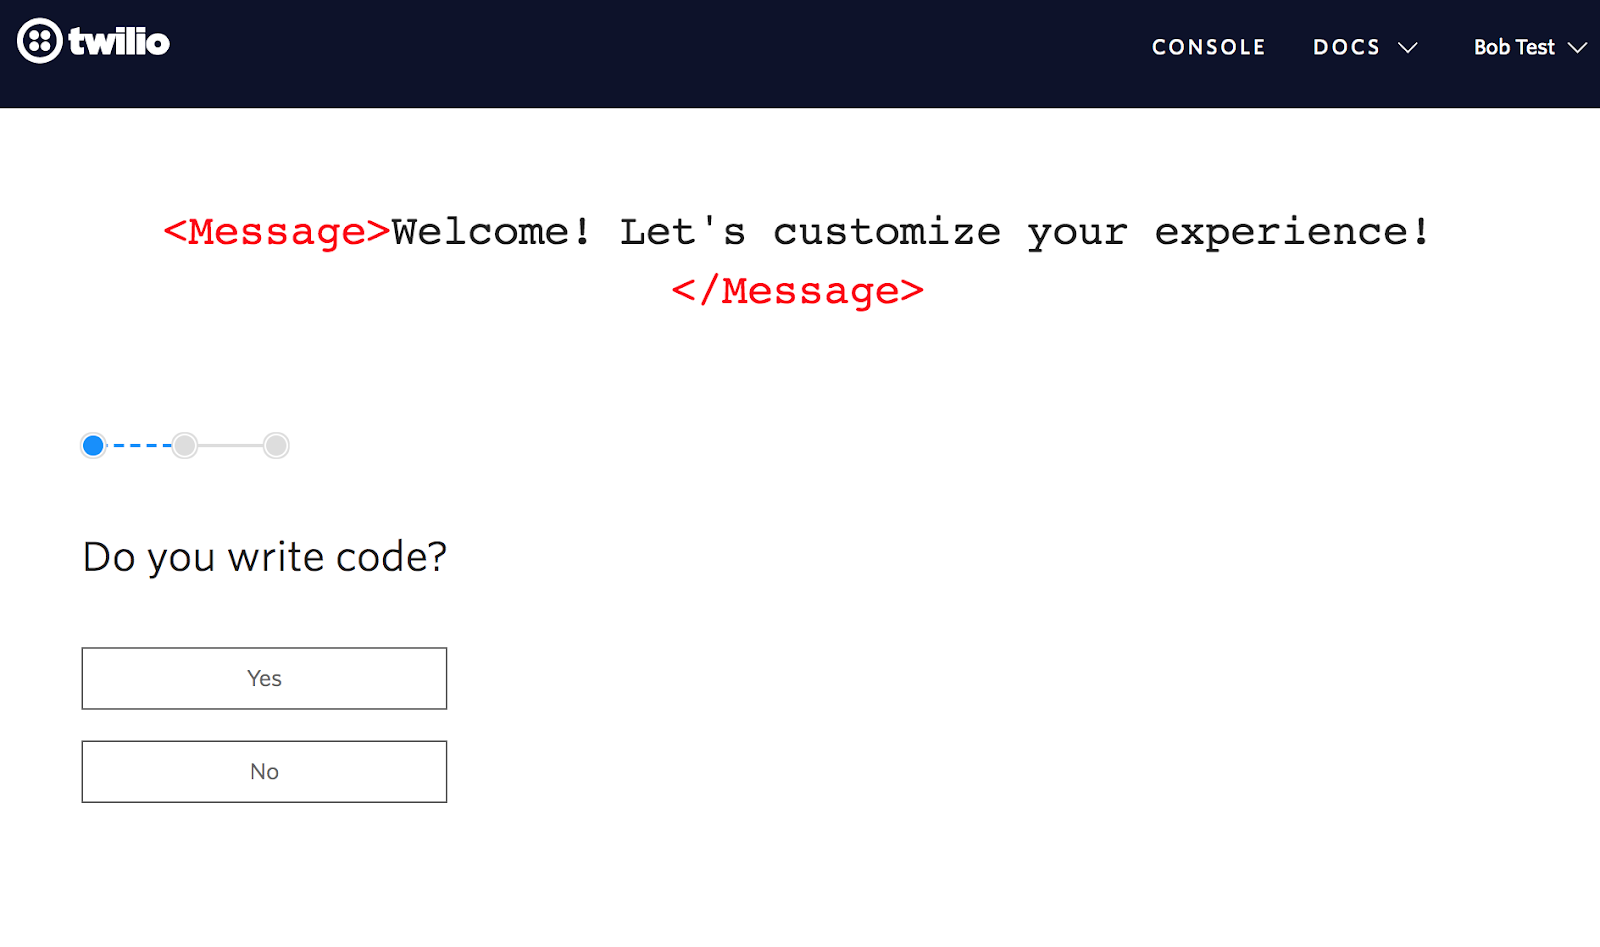 twilio new user onboarding personalization. segmenting users with declared data example